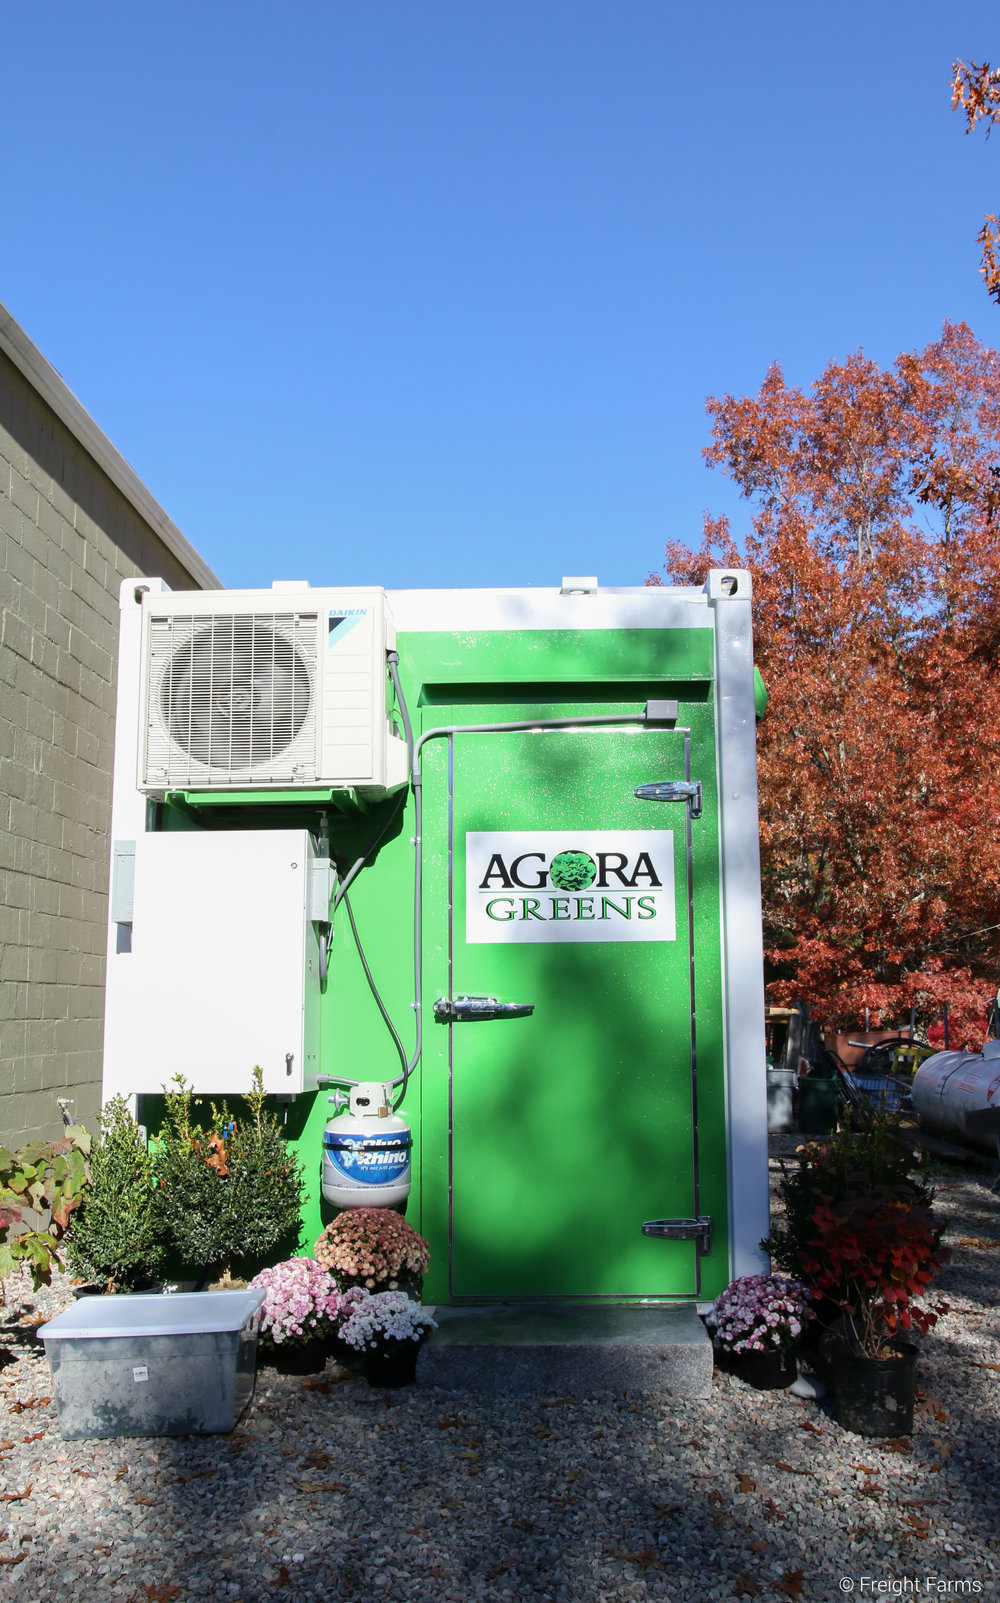 Agora Greens' Leafy Green Machine.